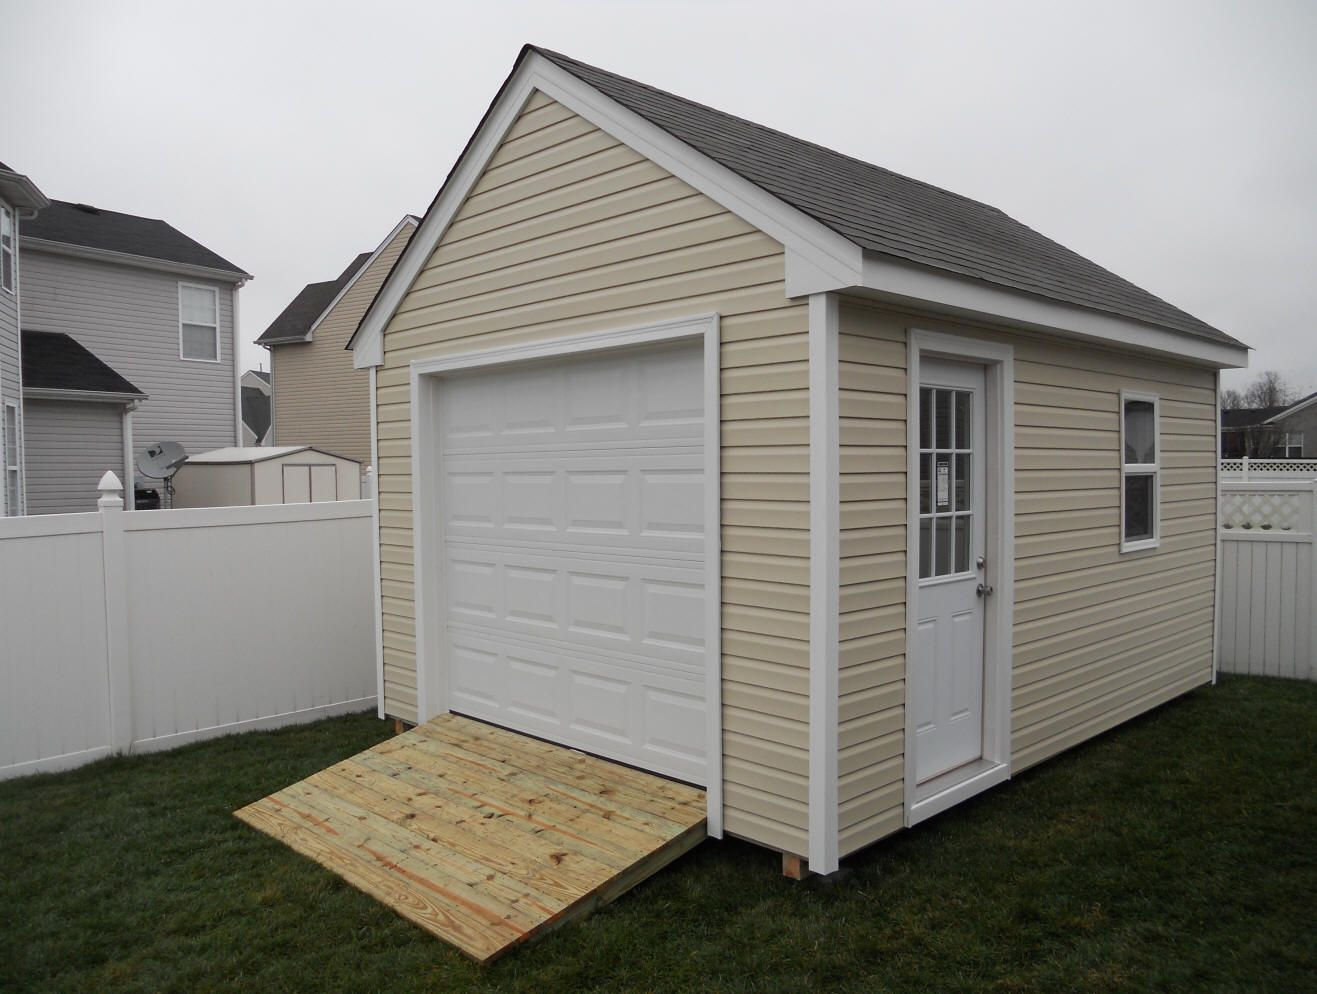 10x12 Shed Plans With Loft Google Search I Like The Garage Door Pertaining To Proportions Xorage Free Diy Gable Sto Shed Plans 10x12 Shed Plans Building A Shed